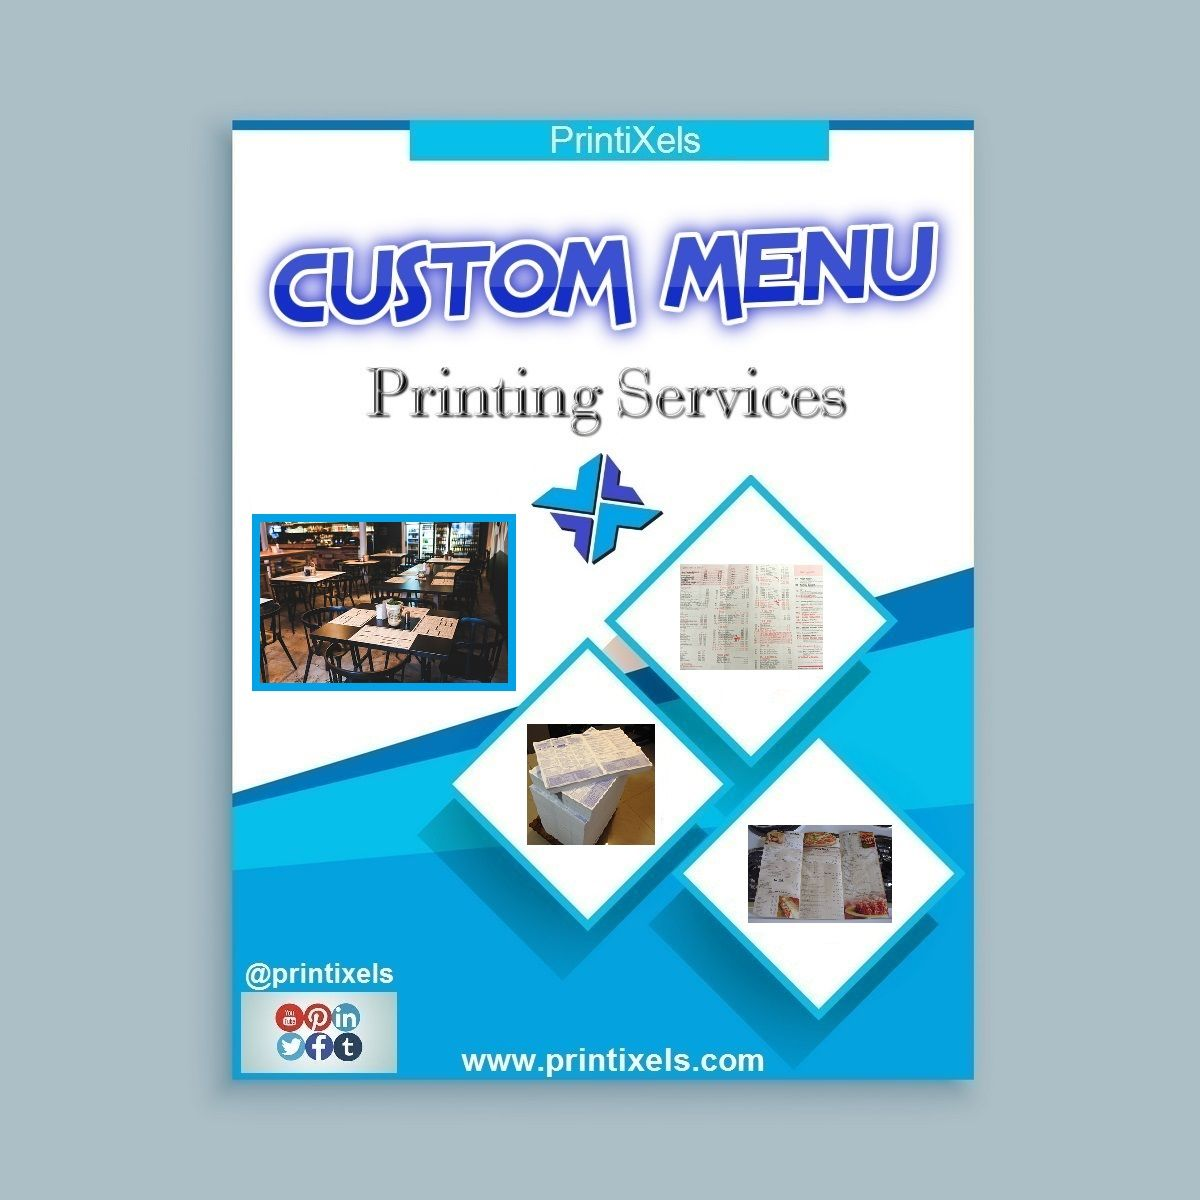 Car sticker maker in the philippines - Find This Pin And More On Digital Printing Services In Cavite Philippines